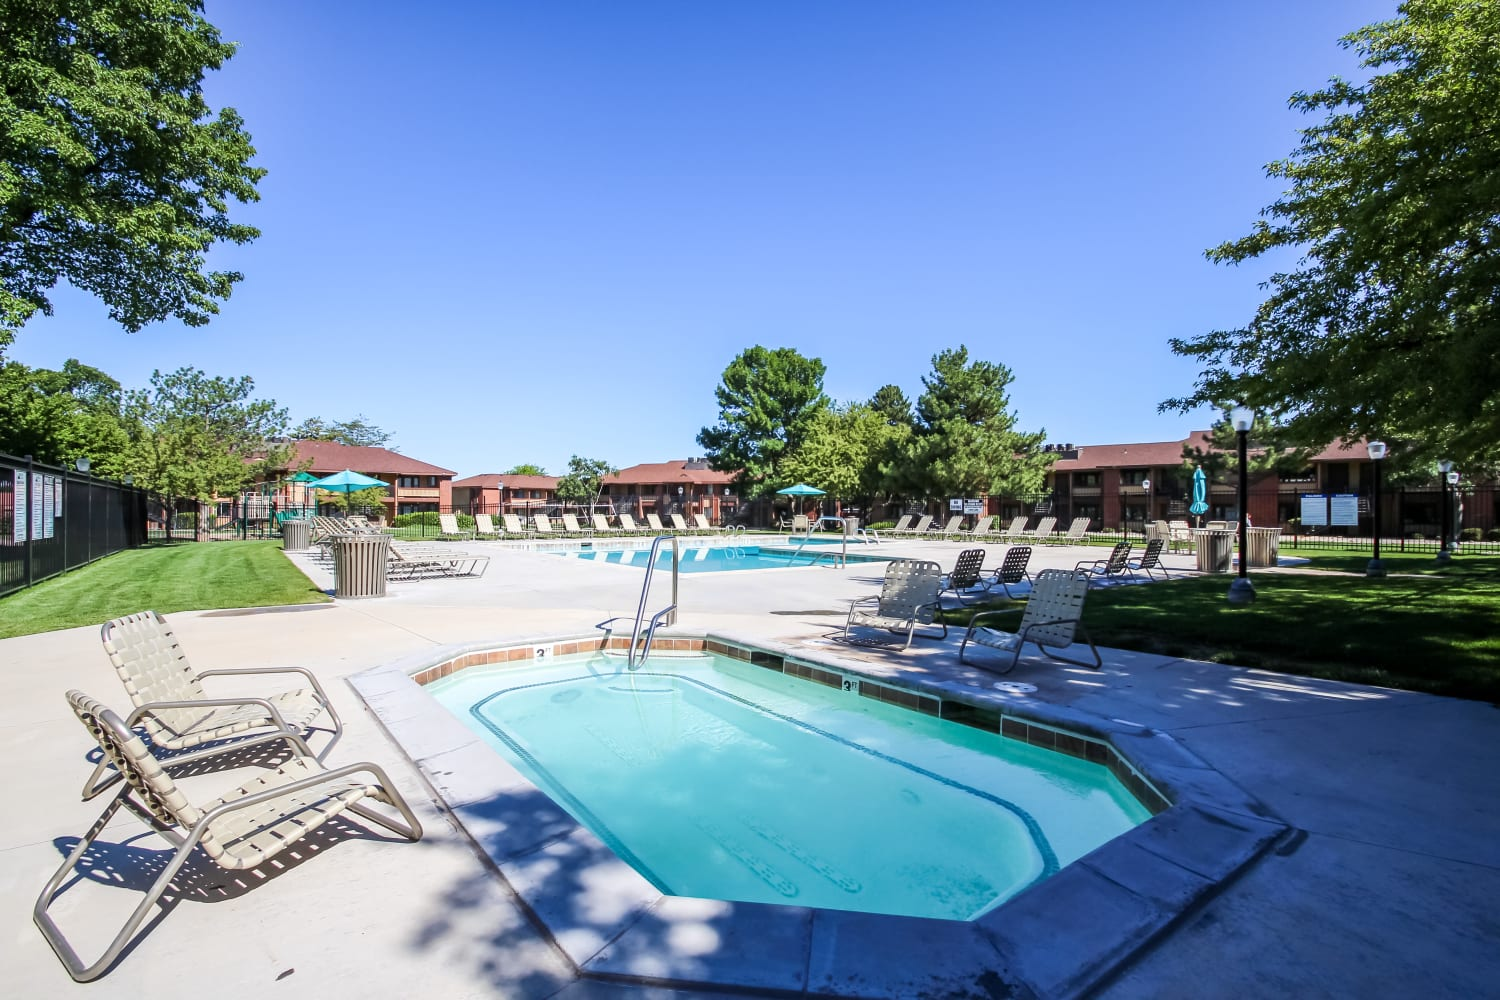 Enjoy having access to a large swimming pool at Wasatch Club Apartments in Midvale, Utah